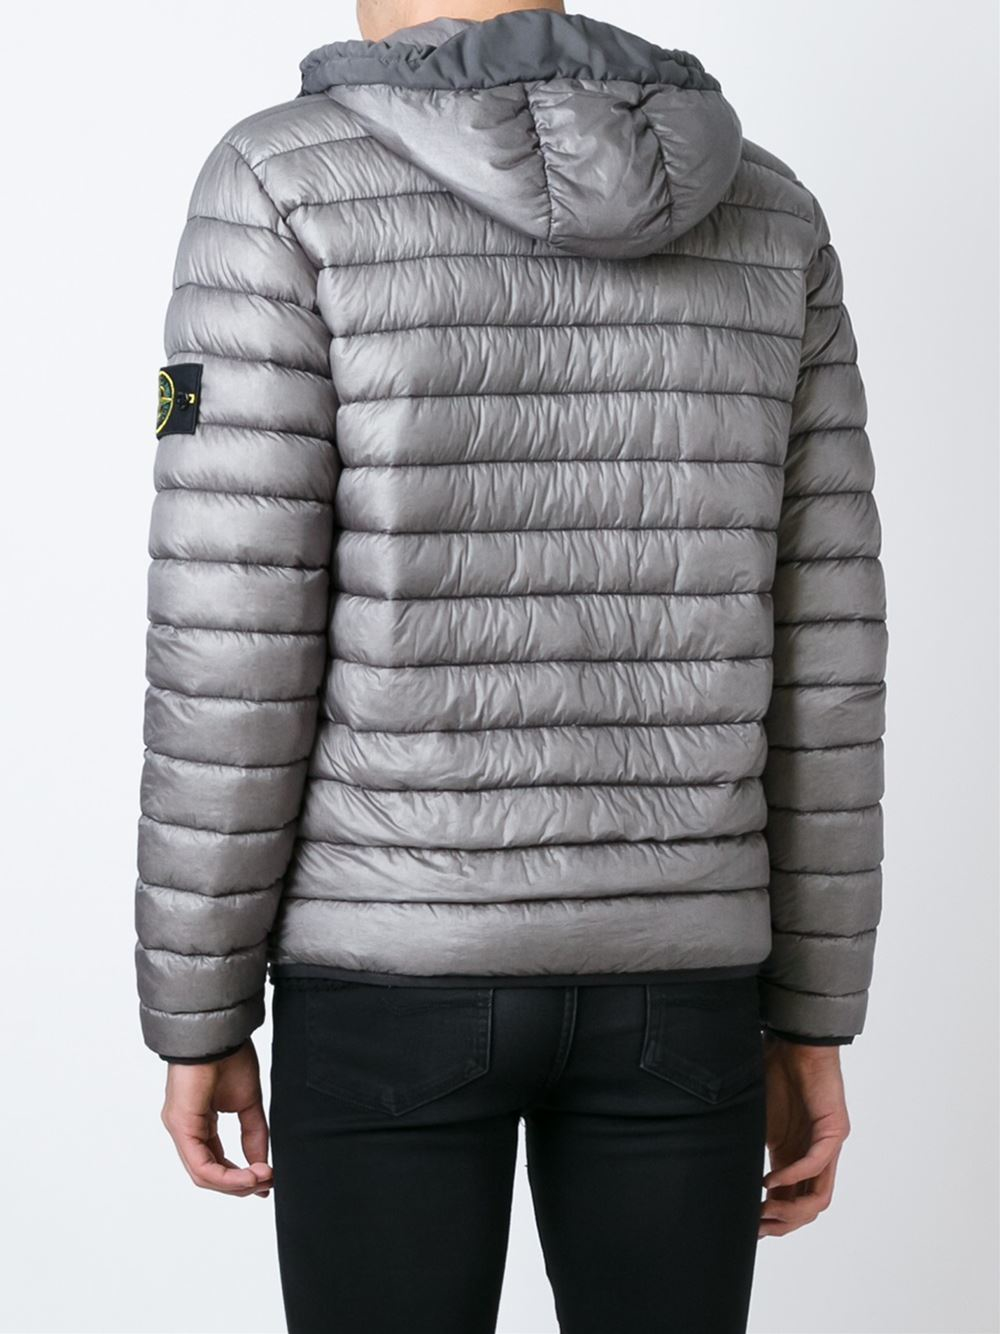 Lyst Stone Island Hooded Padded Jacket In Gray For Men